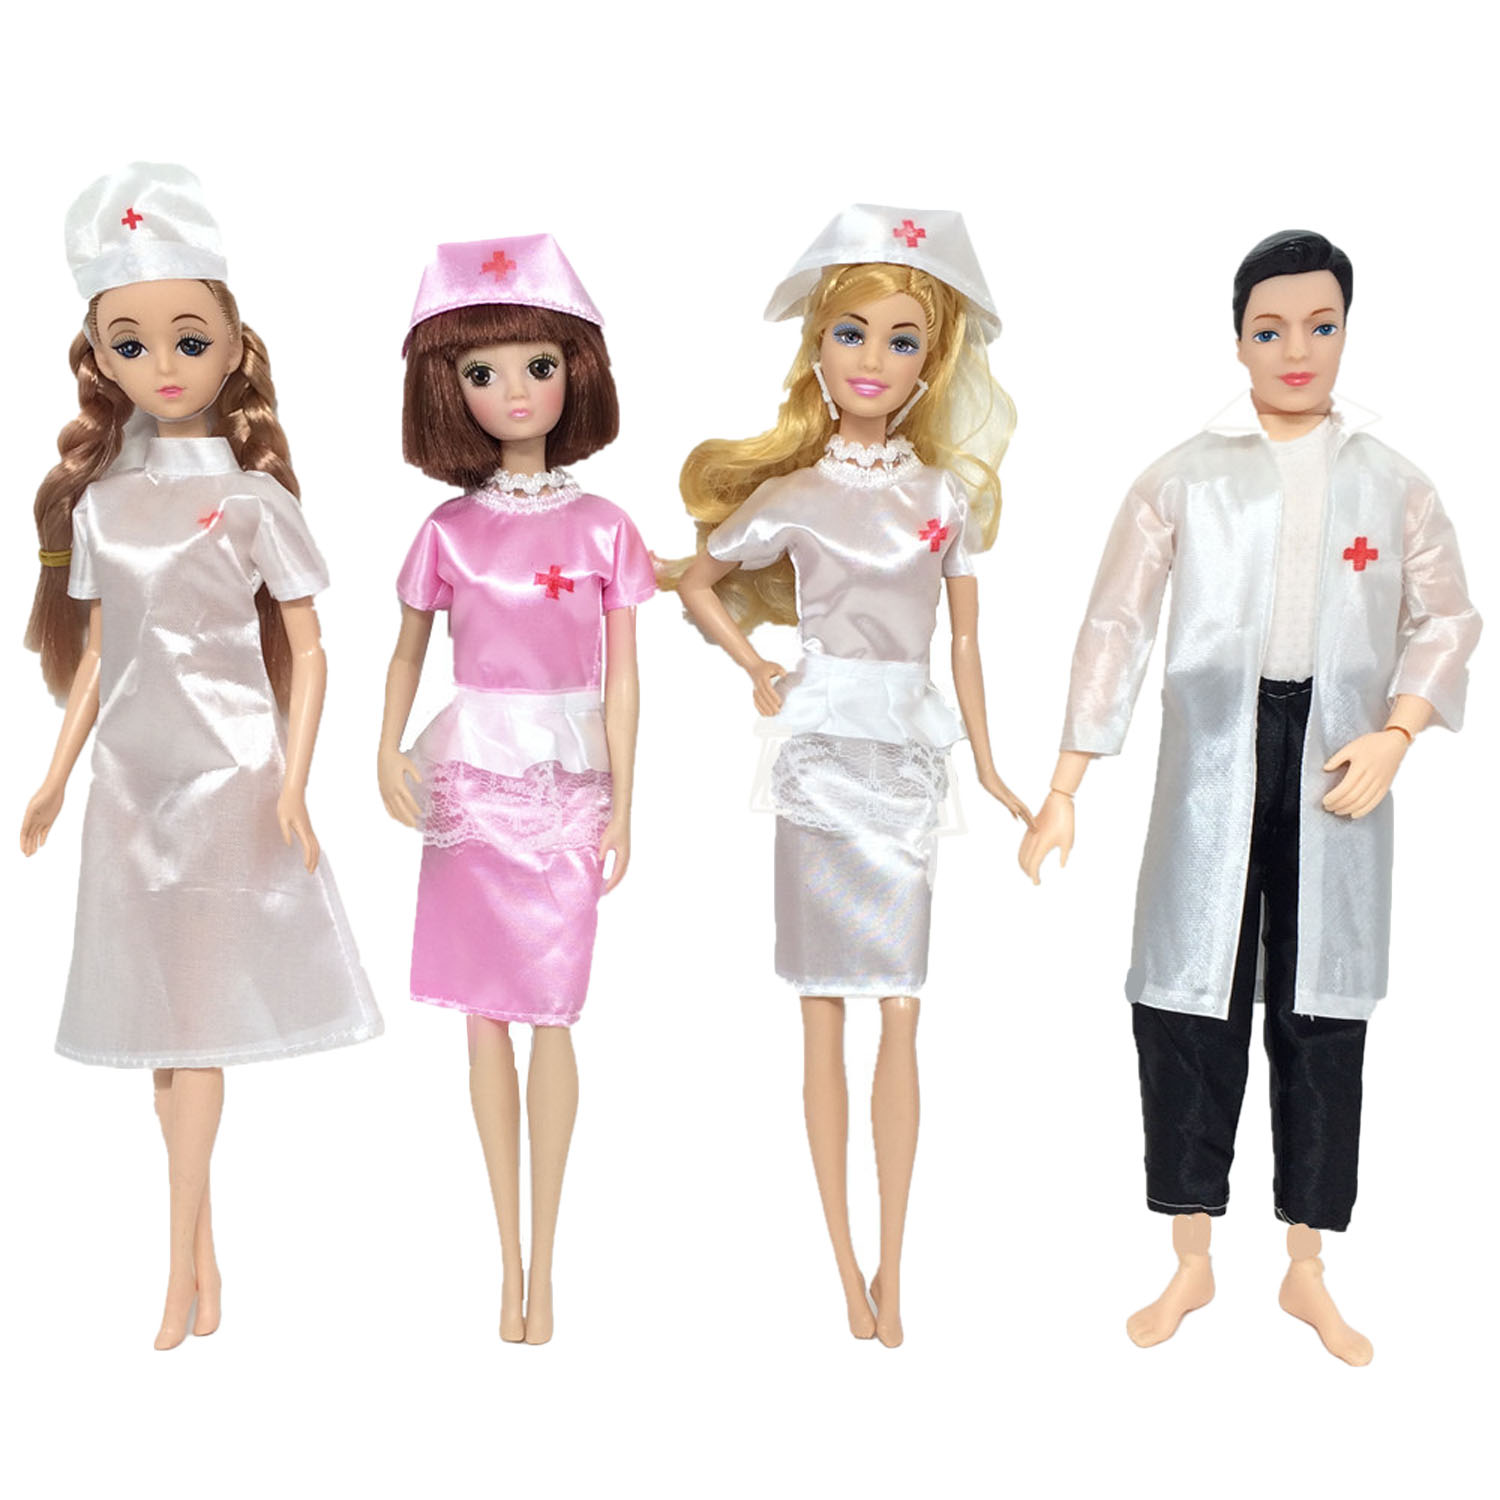 4 Set Doll Toy Nurse And Doctor Career Apparel Clothes Outfits Suits Clothing Accessories for Barbie Dolls Toys